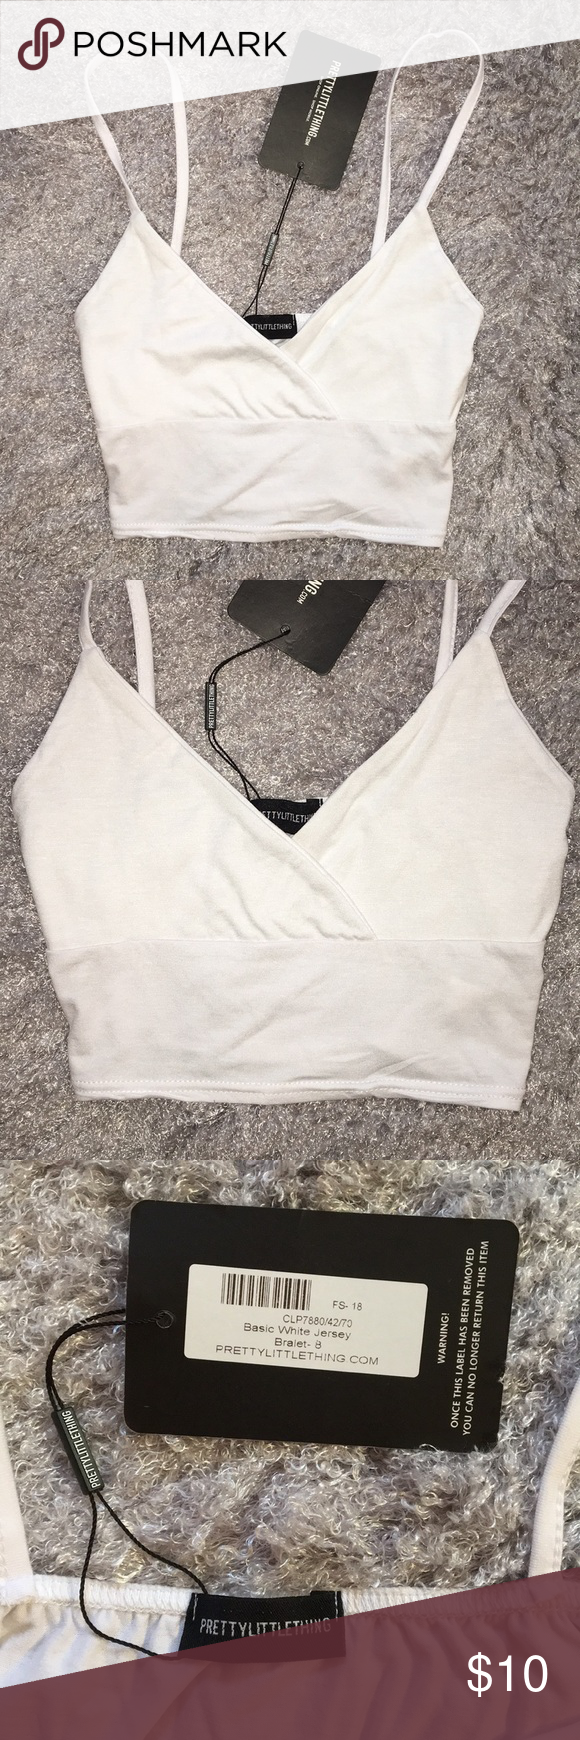 f103beff7560b NWT Pretty Little Thing Jersey Bralette Crop Top NWT 💞 US size 4 Basic  white bralette crop tank top V-neck Jersey material PrettyLittleThing Tops  Tank Tops